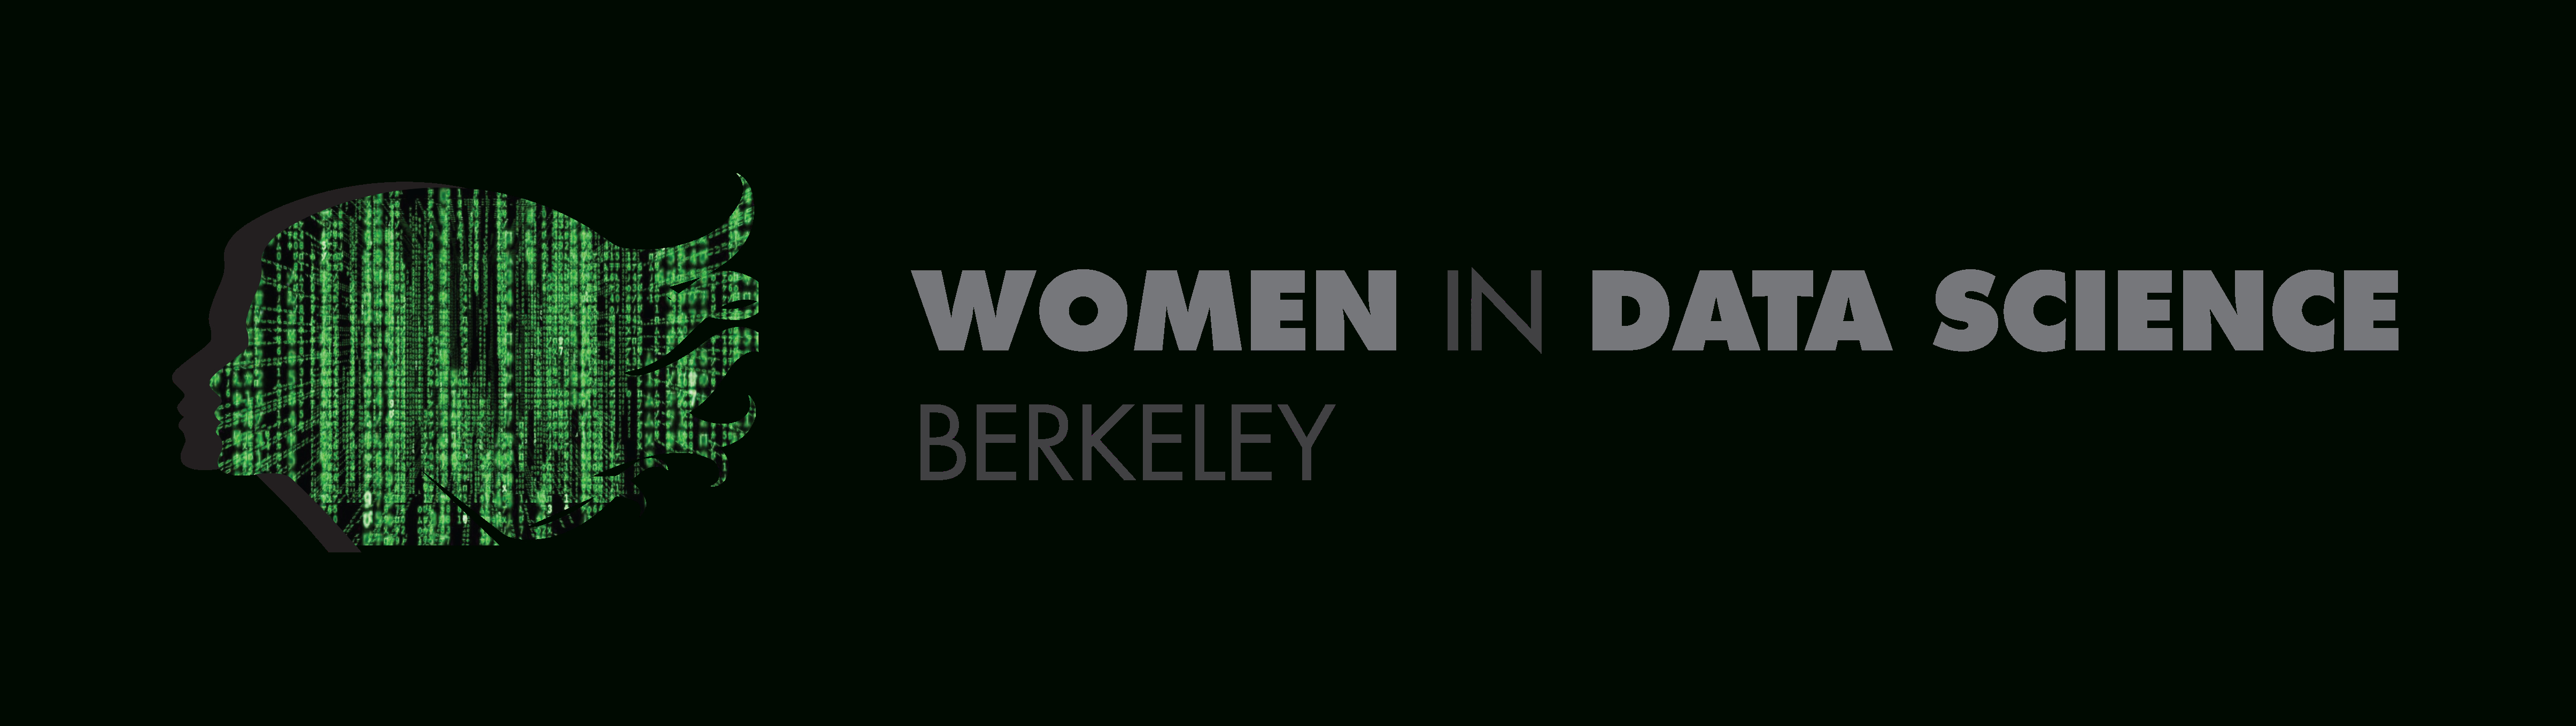 Uc Berkeley Events Calendar | All Events with Uc Berkeley Spring 2020 Calendar